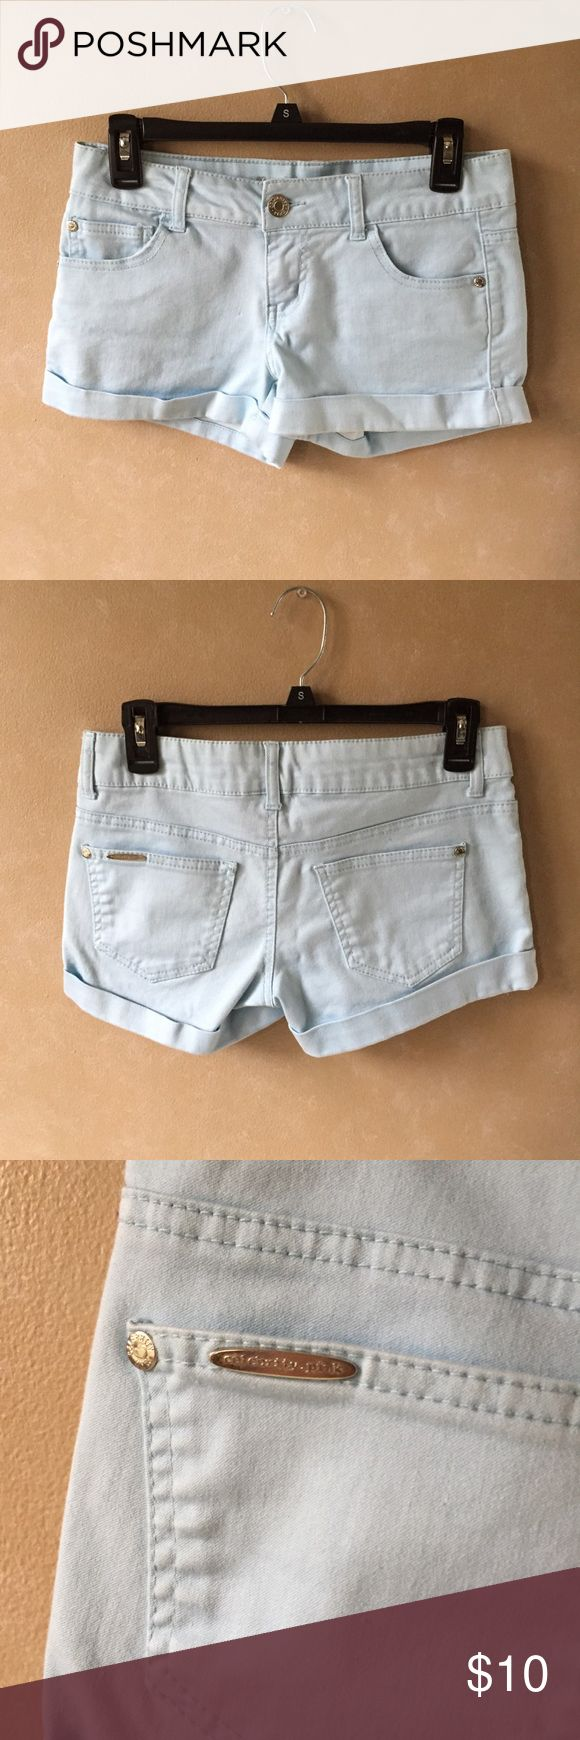 Light blue shorts Light blue shorts | Size 5 (juniors) | Beautiful sky blue color *See last few photos for actual color* | Never worn/no damage                                                                  🛍Bundle & Save!  💕Accepting offers  📫I ship within 1-2 days  💎I don't ship on Sat. afternoon & Sun. Shorts Jean Shorts